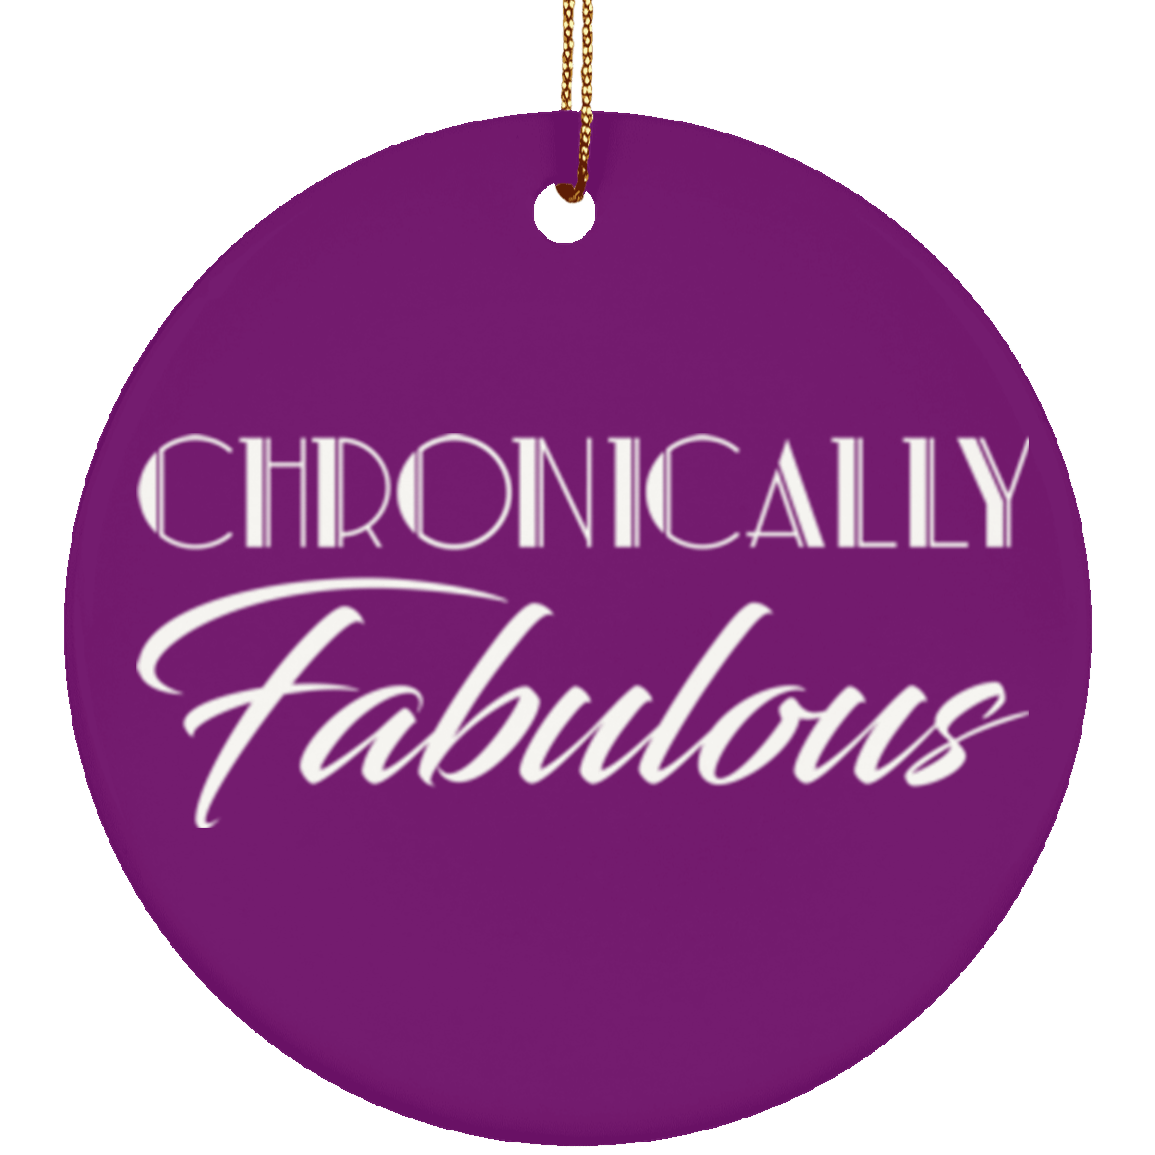 Chronically Fabulous Circle Ornament - The Unchargeables